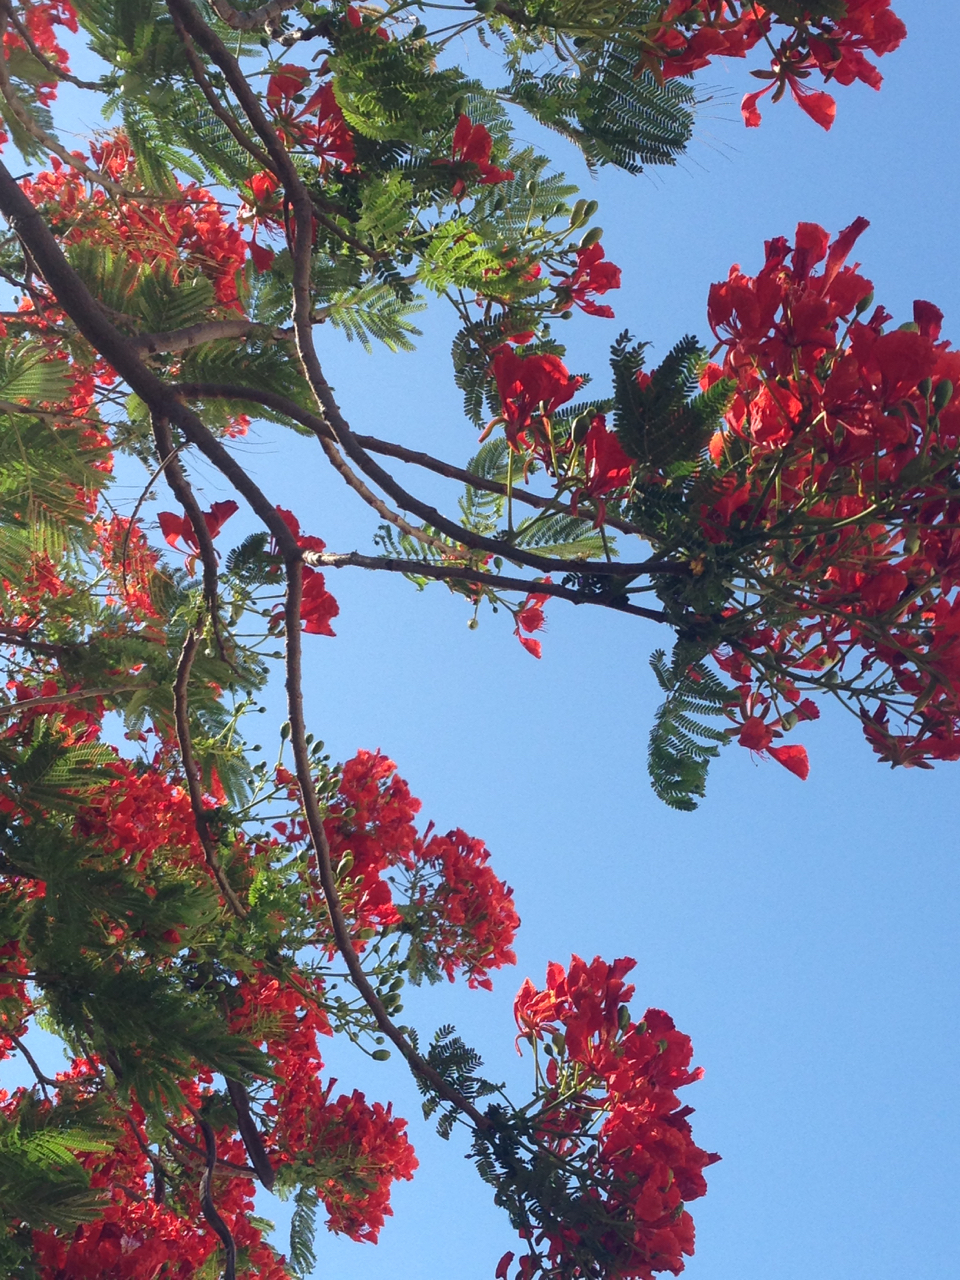 Poinciana blooms